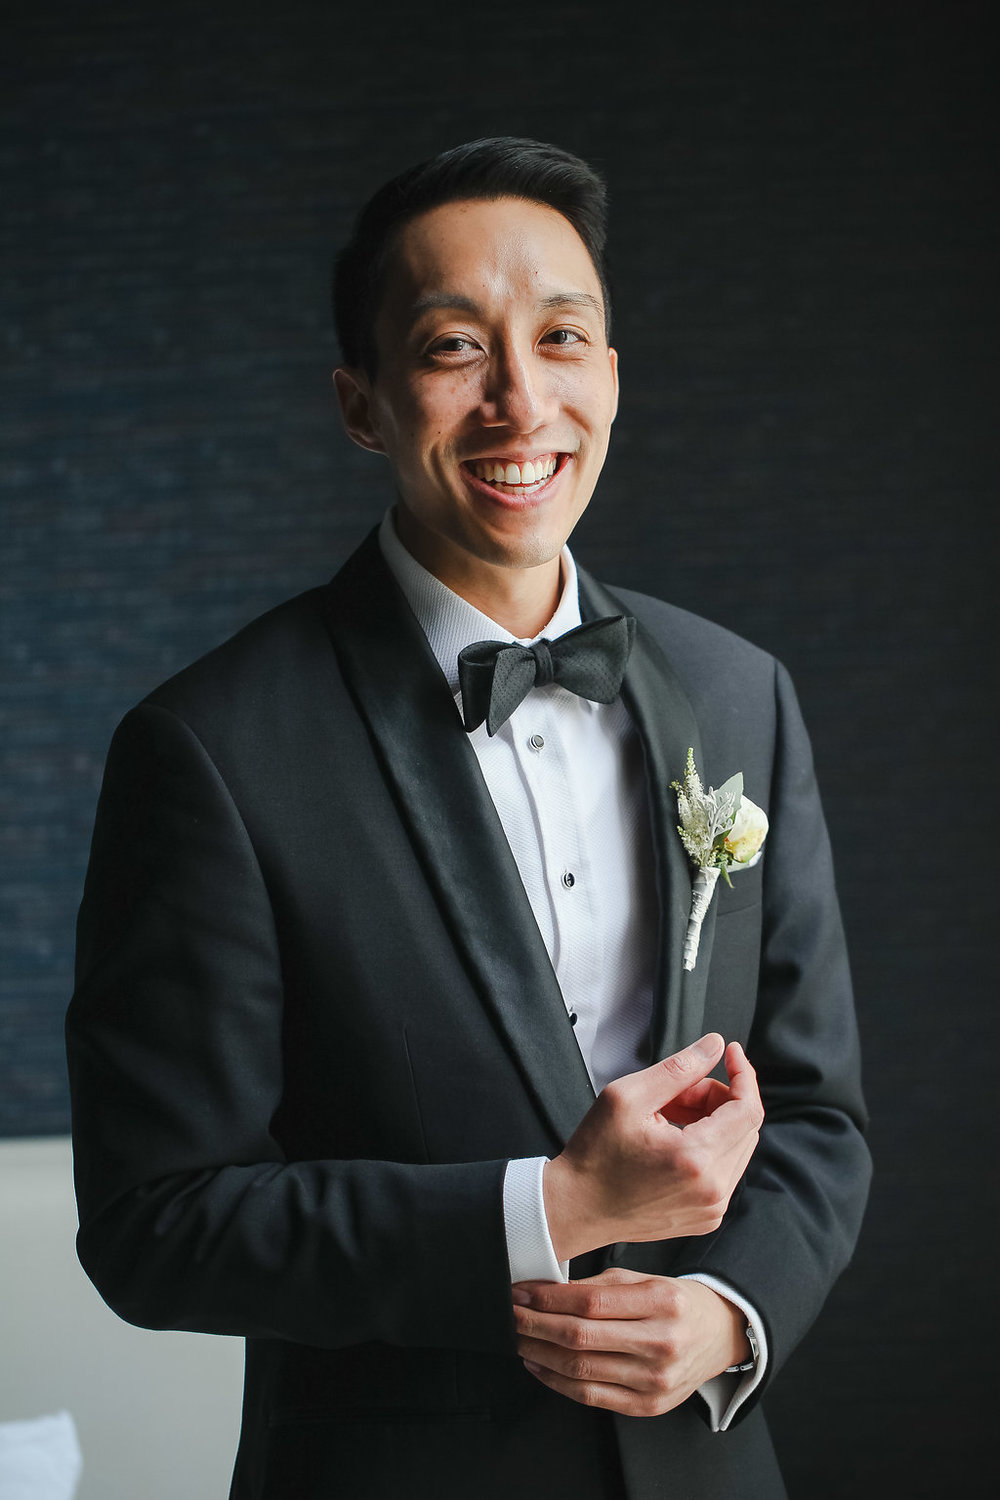 The groom wore a sharp black and white tux (and a look of someone truly elated!)